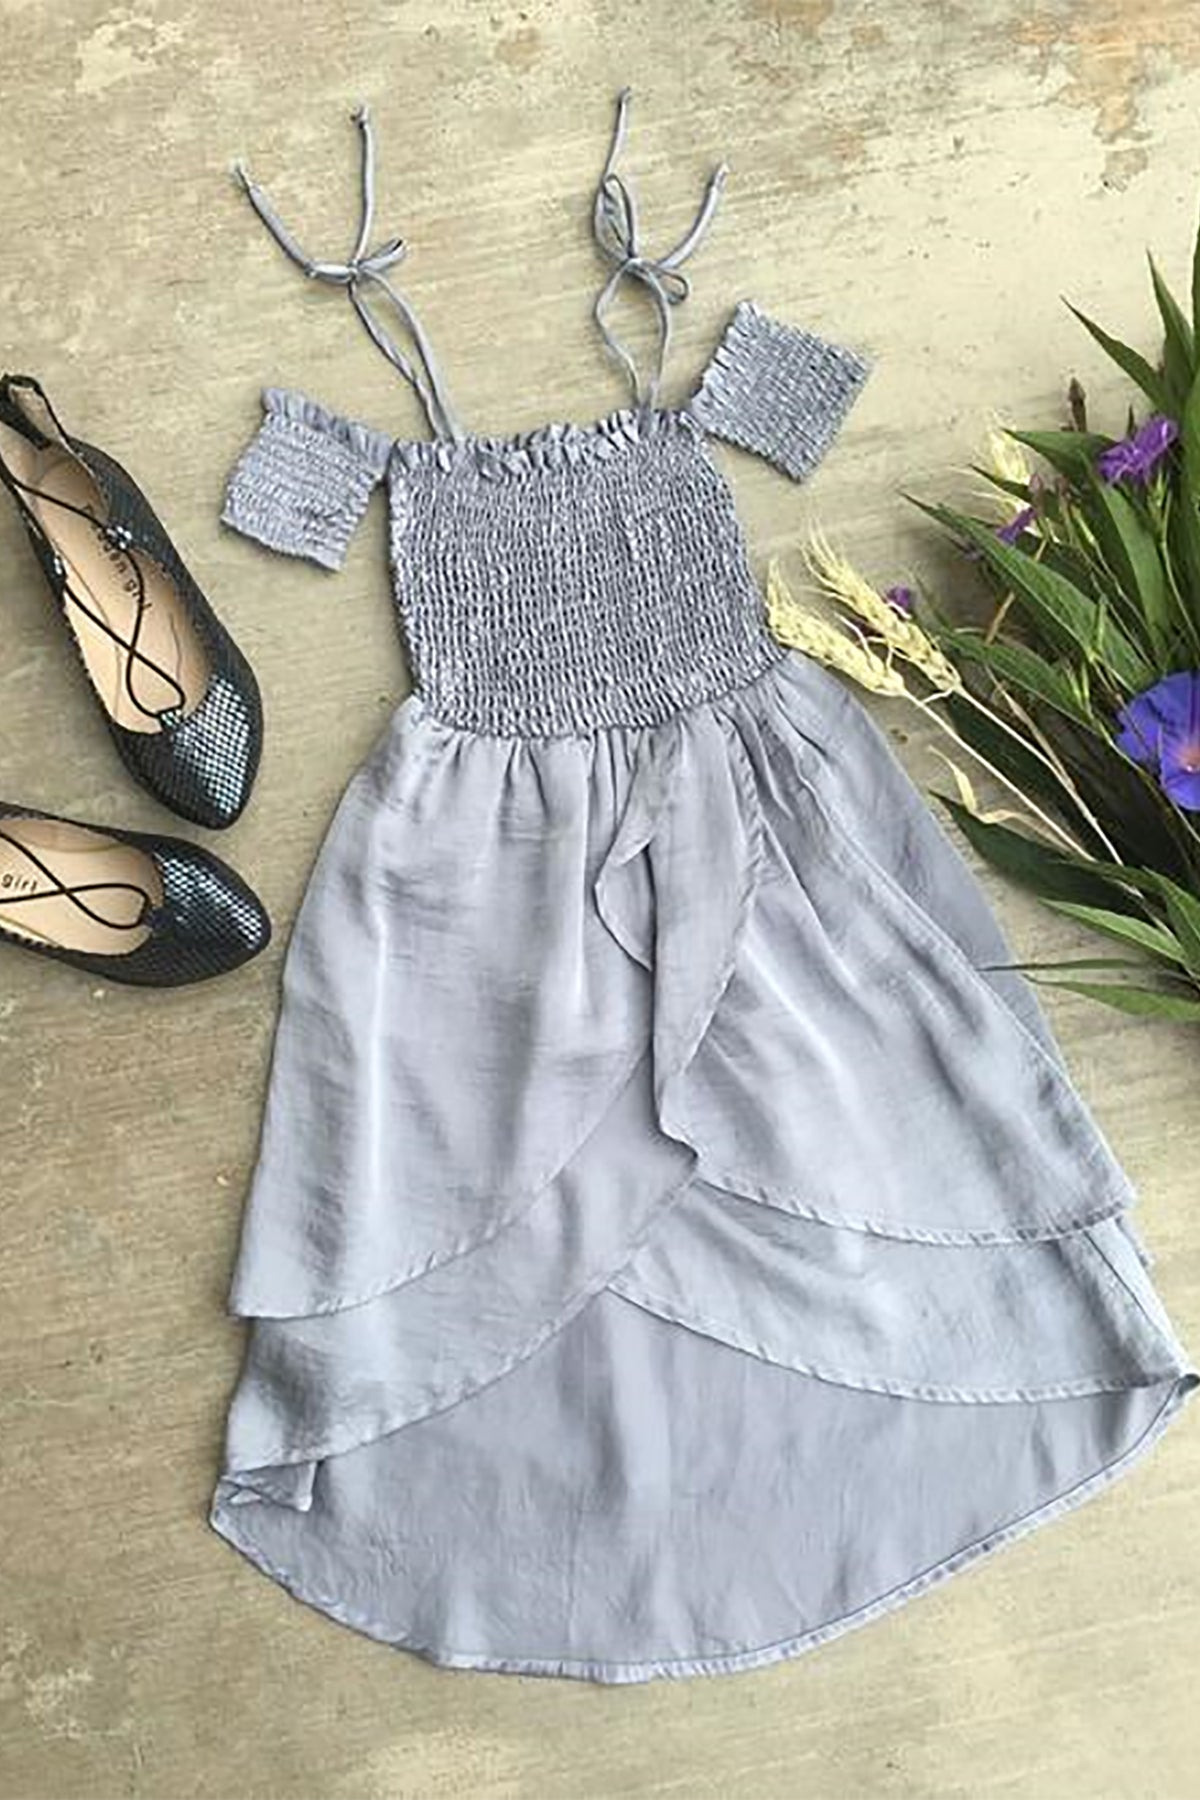 KID'S PORTRAIT DRESS